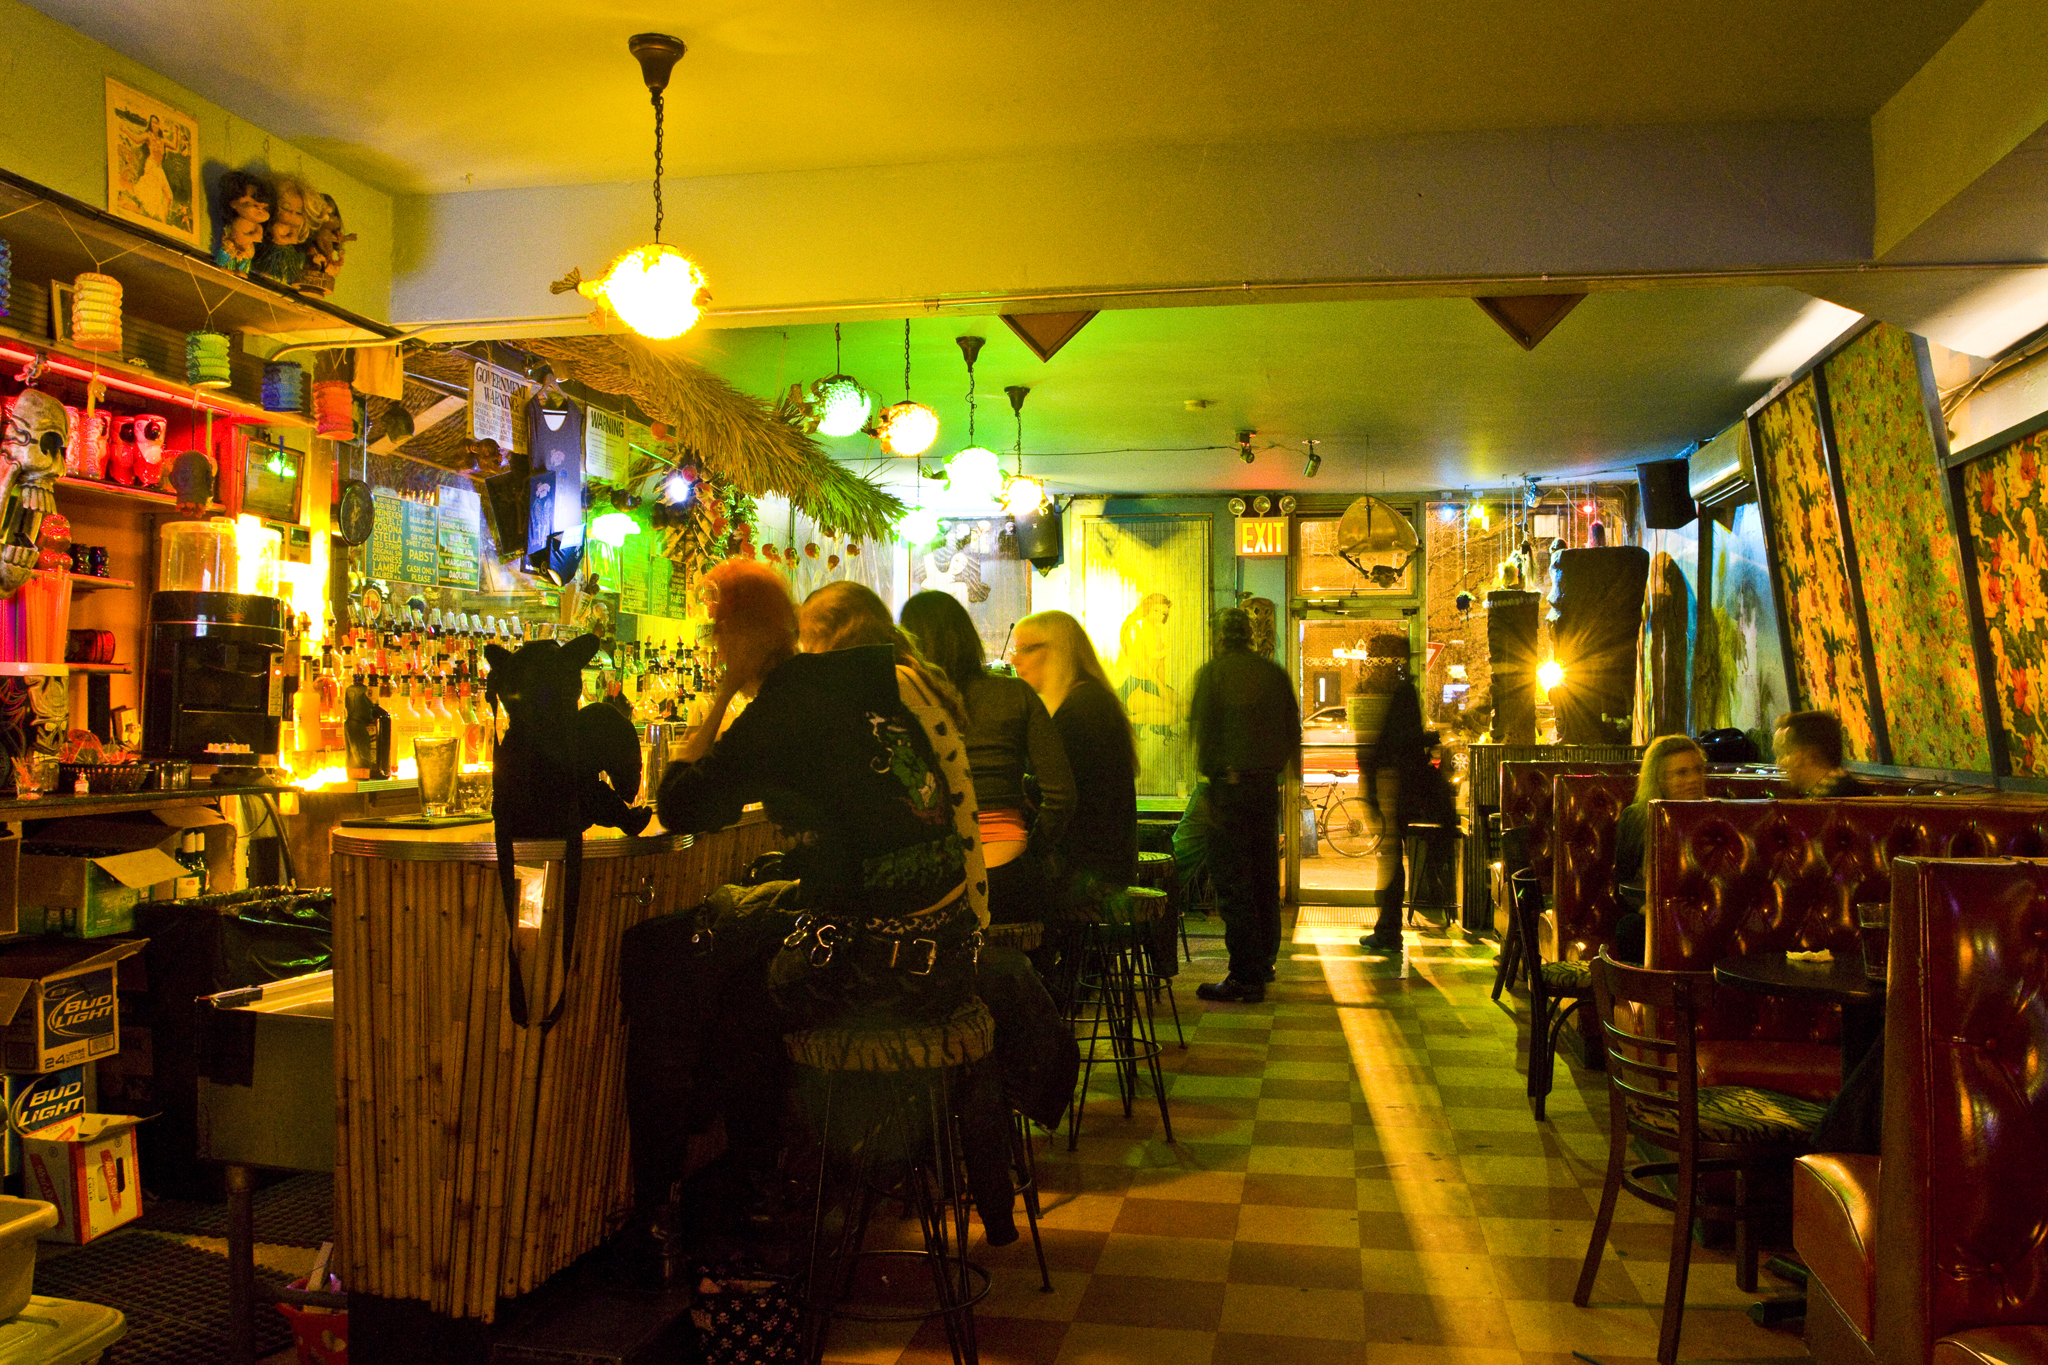 Indulge in offbeat entertainment at Otto's Shrunken Head